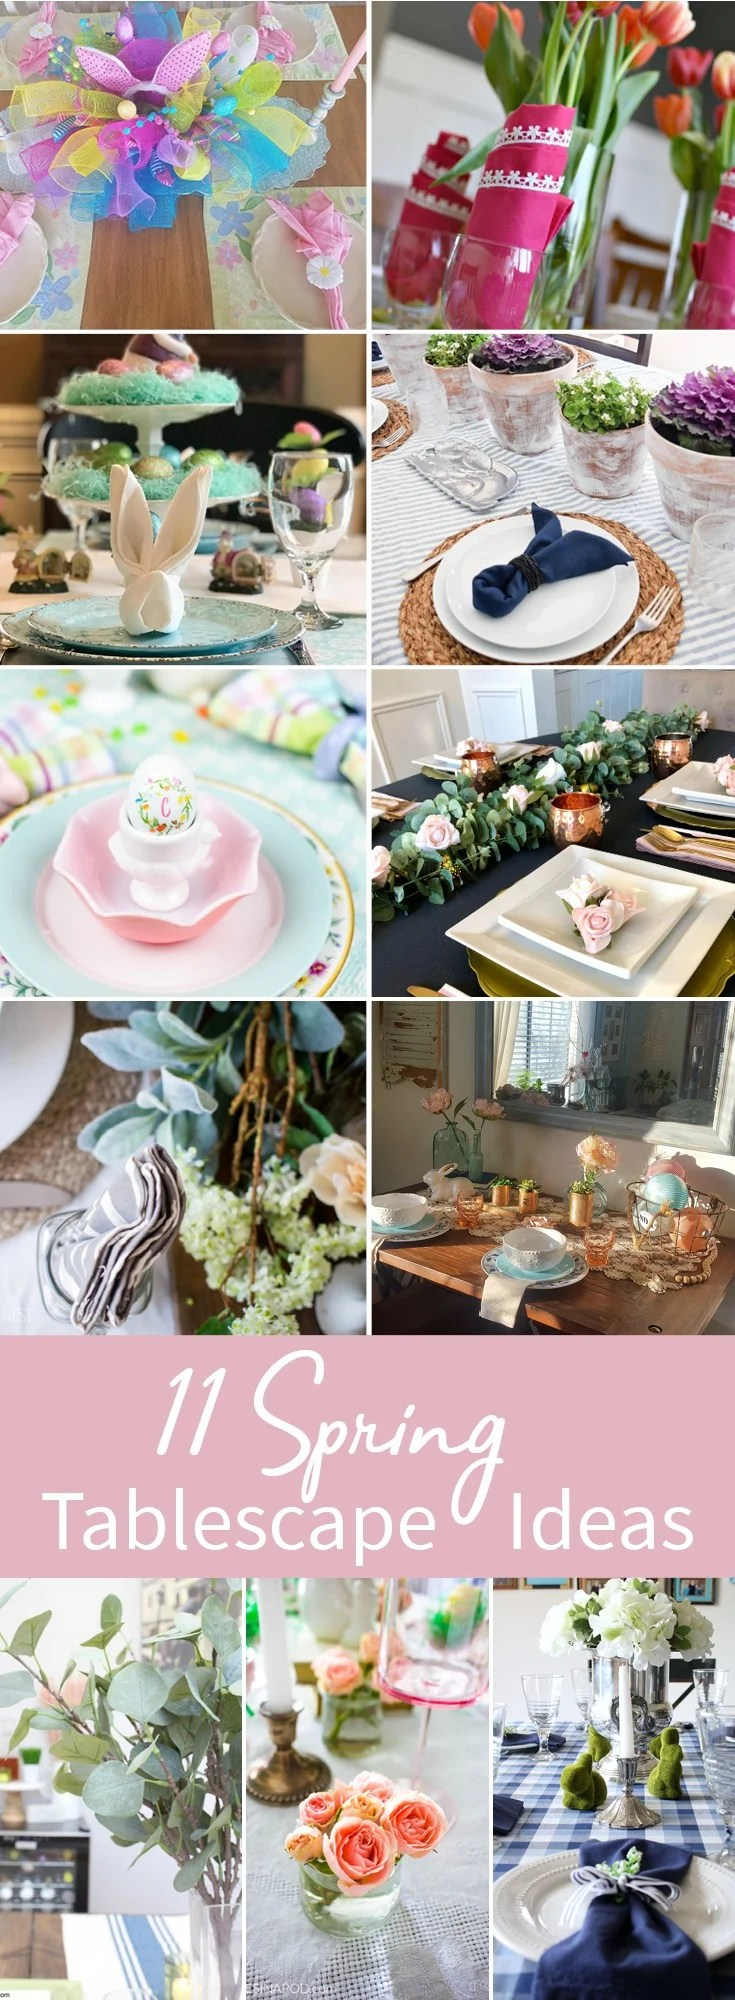 11 Spring Tablescape Ideas. Spring Table Decoration Ideas